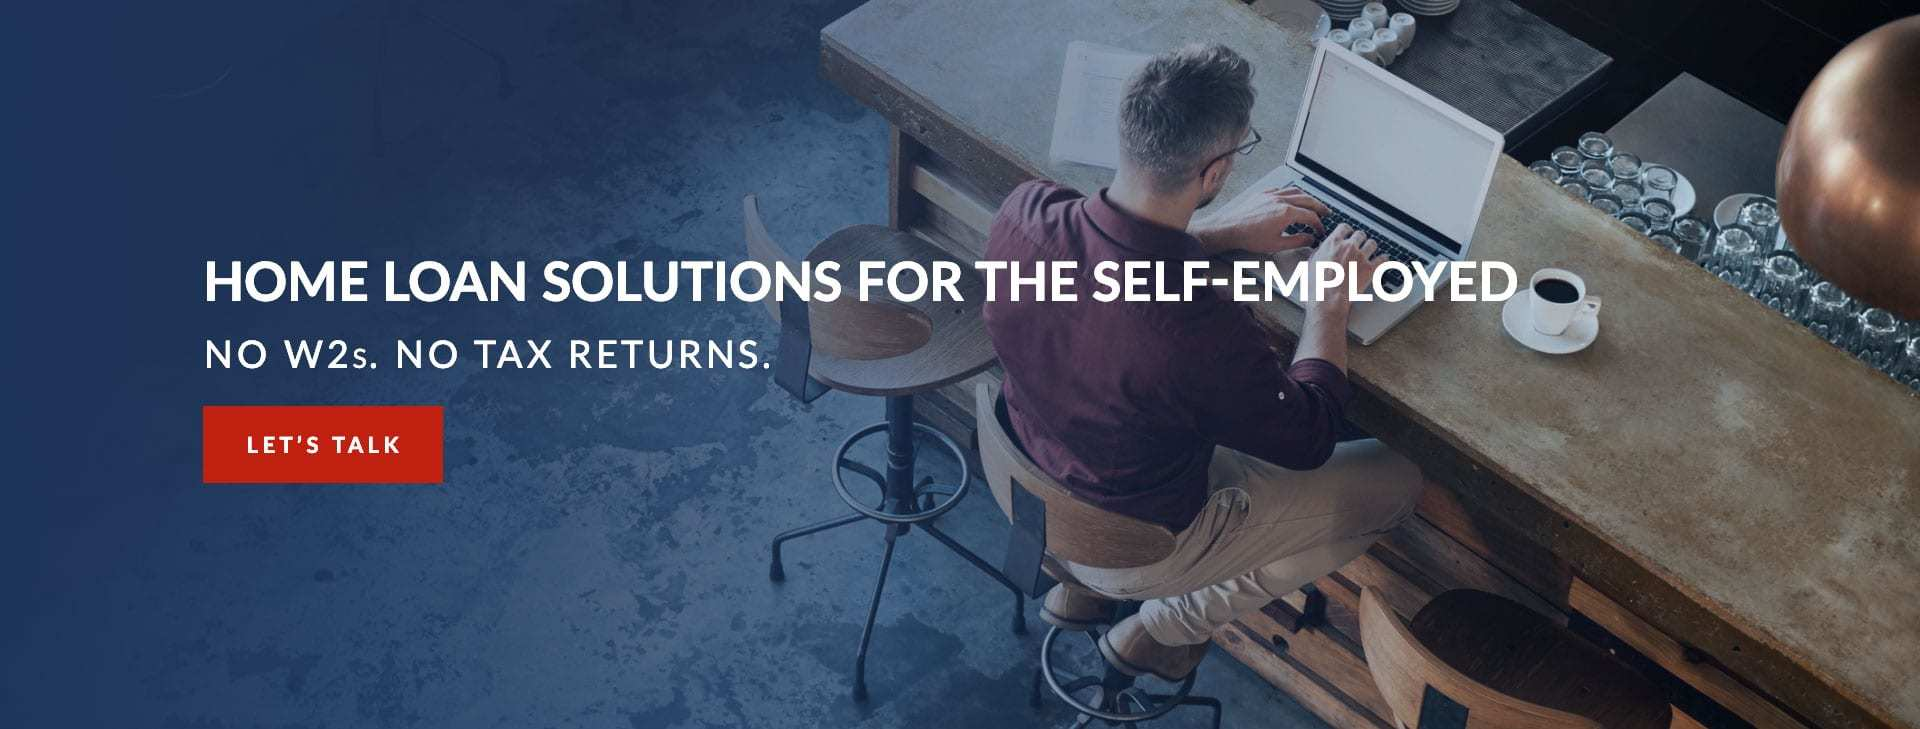 Home Loans for the Self-Employed